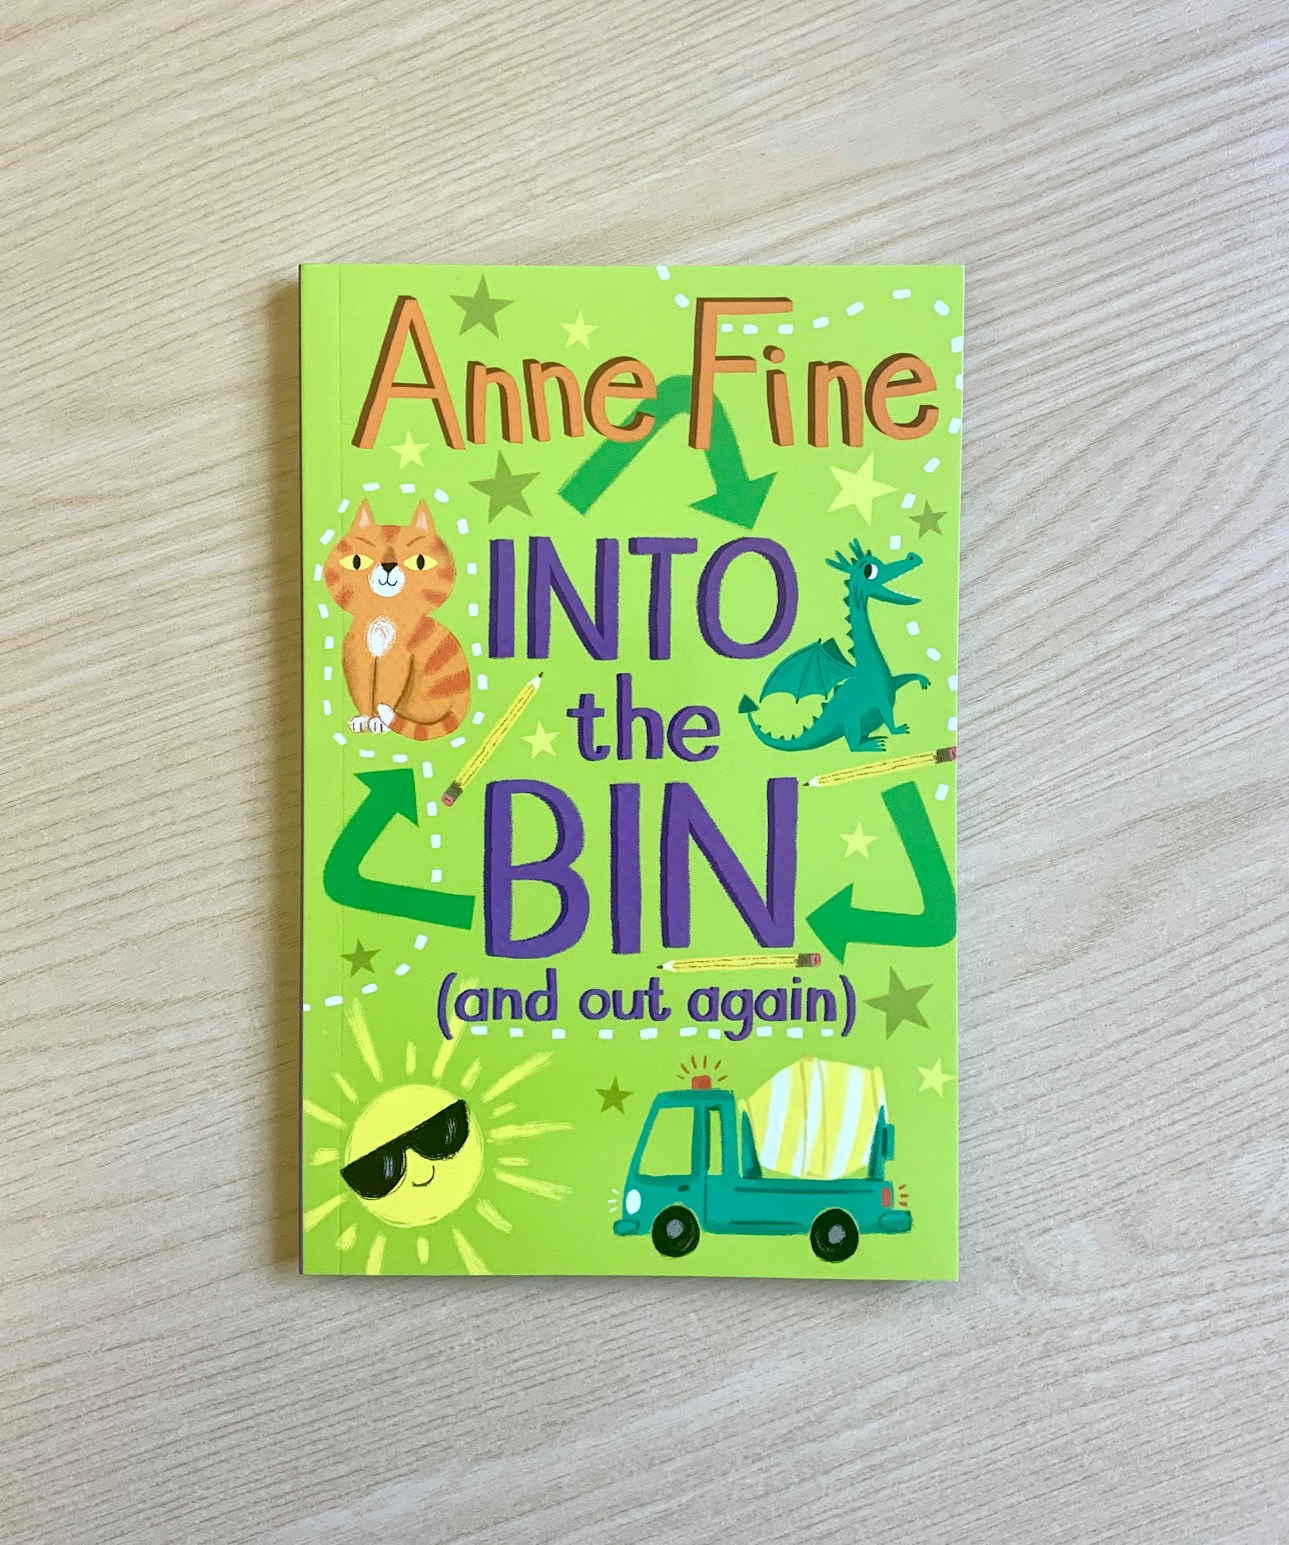 Photograph of the book INTO THE BIN by Anne Fine, and Vicki Gausden